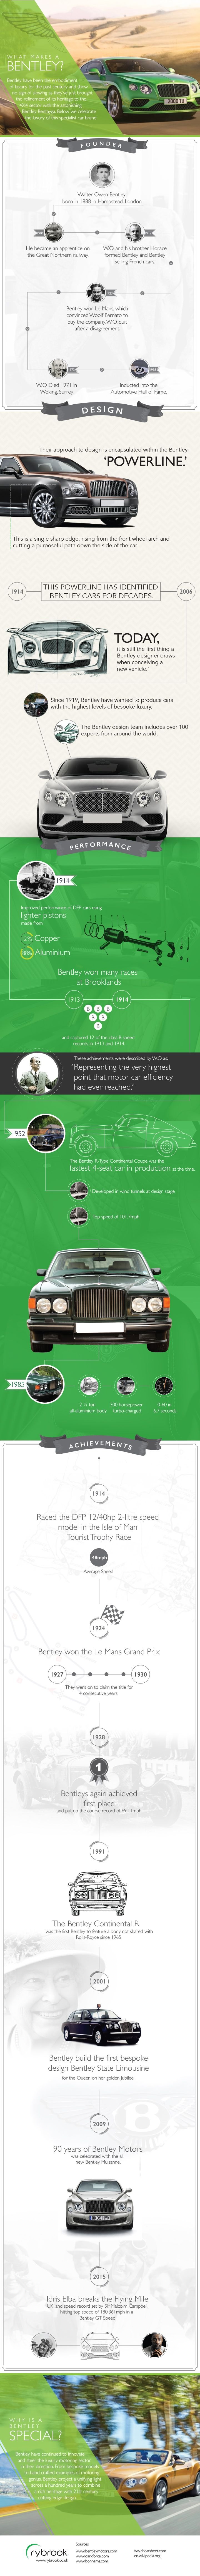 What Makes A Bentley? #supercars #specialistcars #motoring